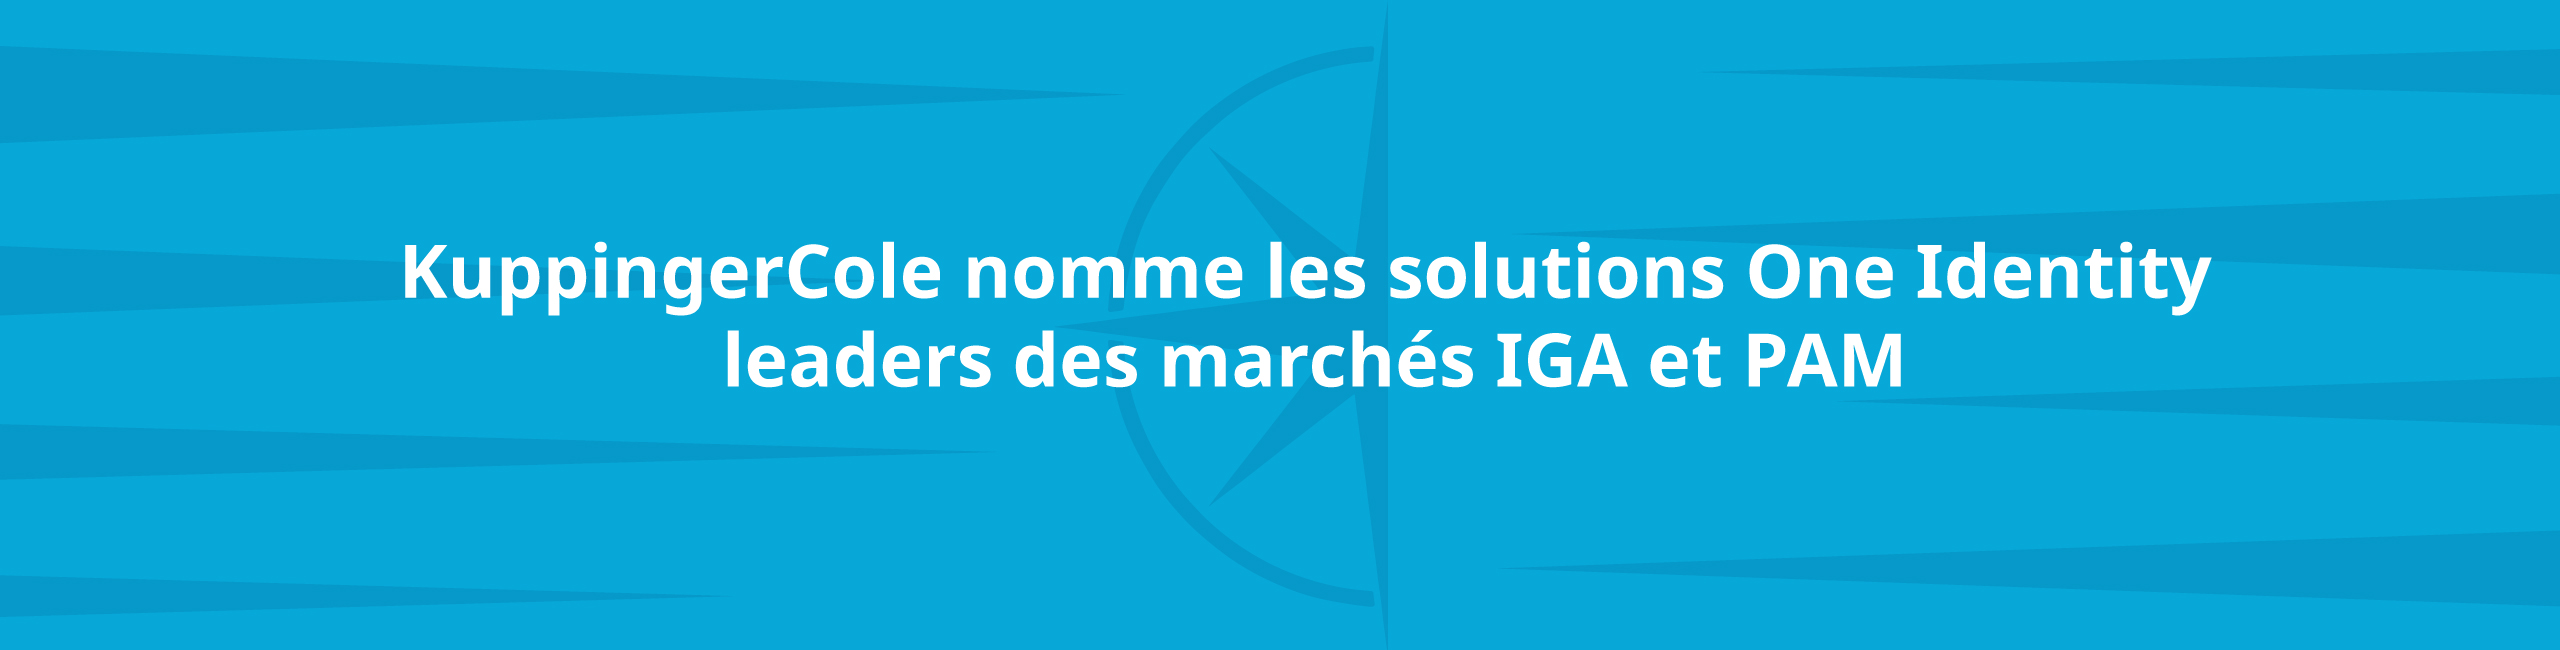 KuppingerCole nomme les solutions One Identity leaders des marchés IGA et PAM